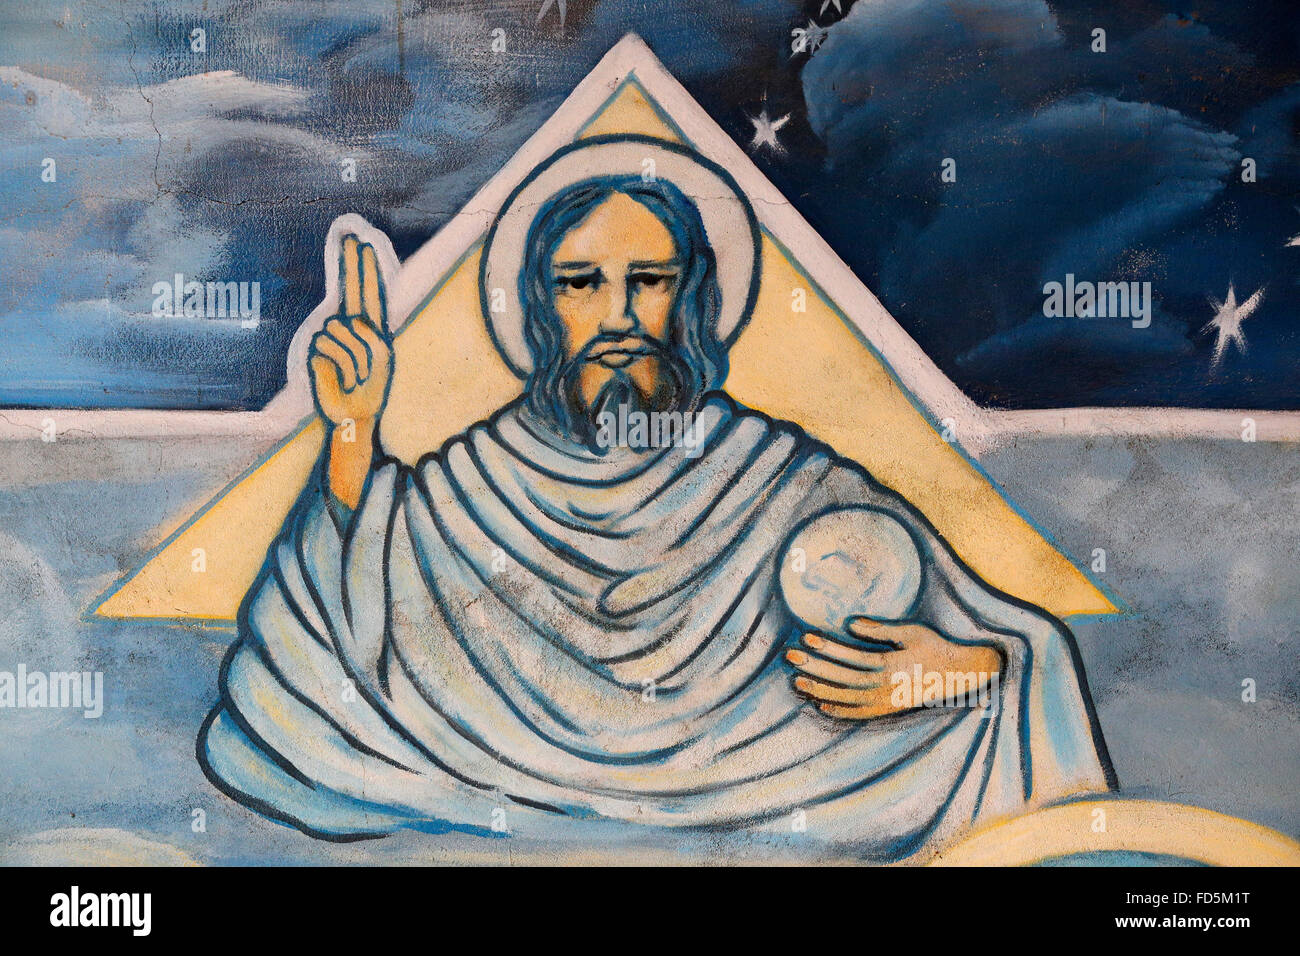 Painting. Depiction of God. - Stock Image